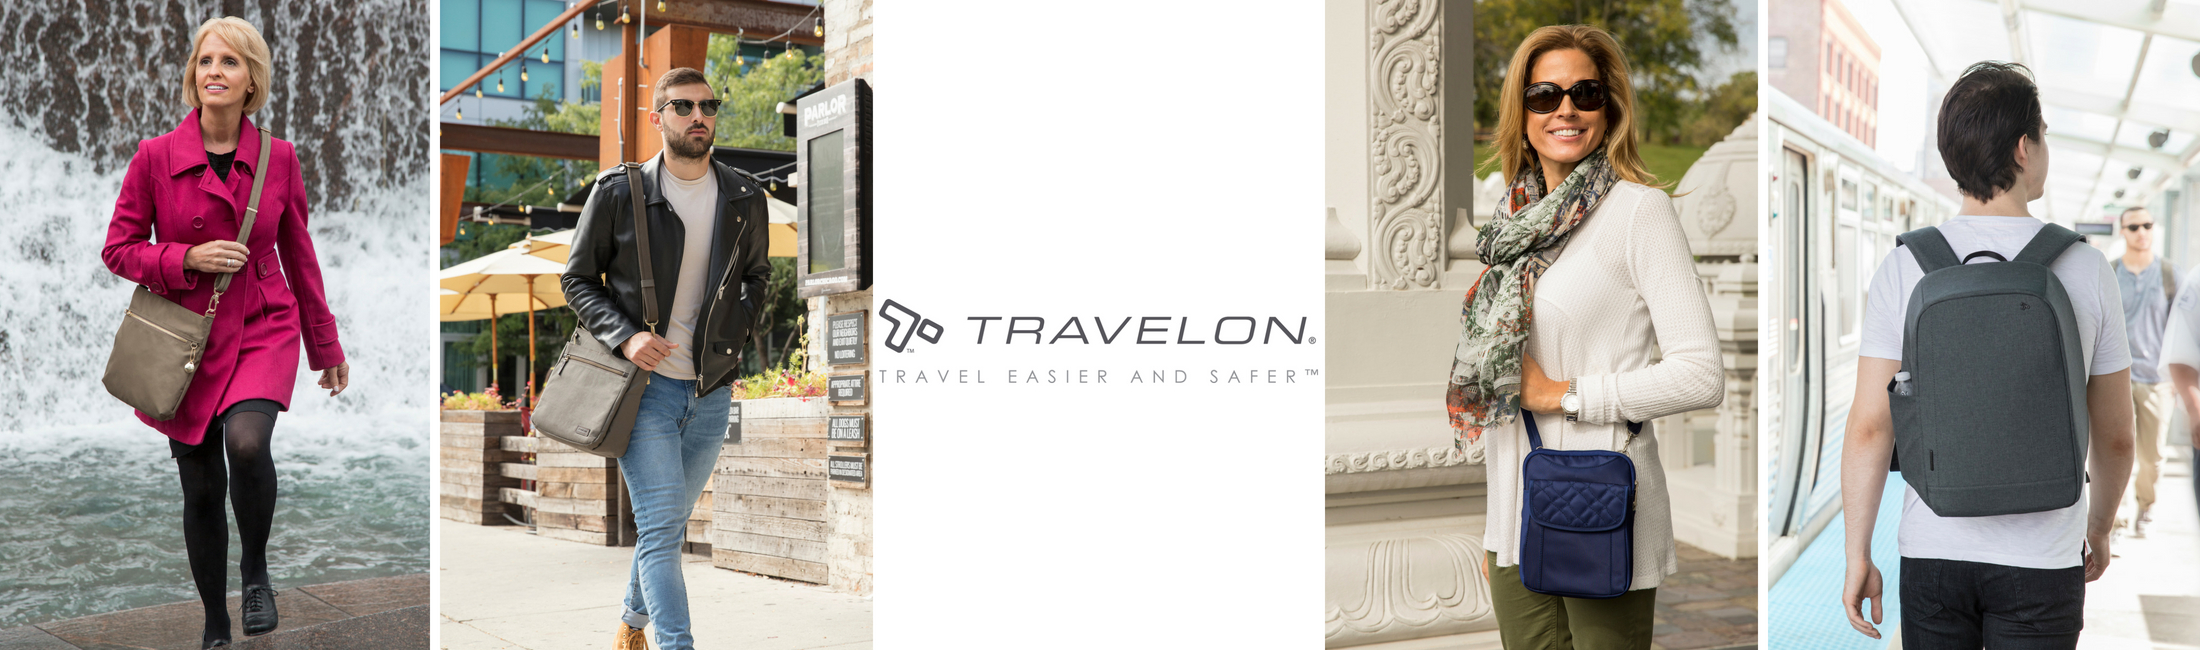 Travelon - TravelSmarts